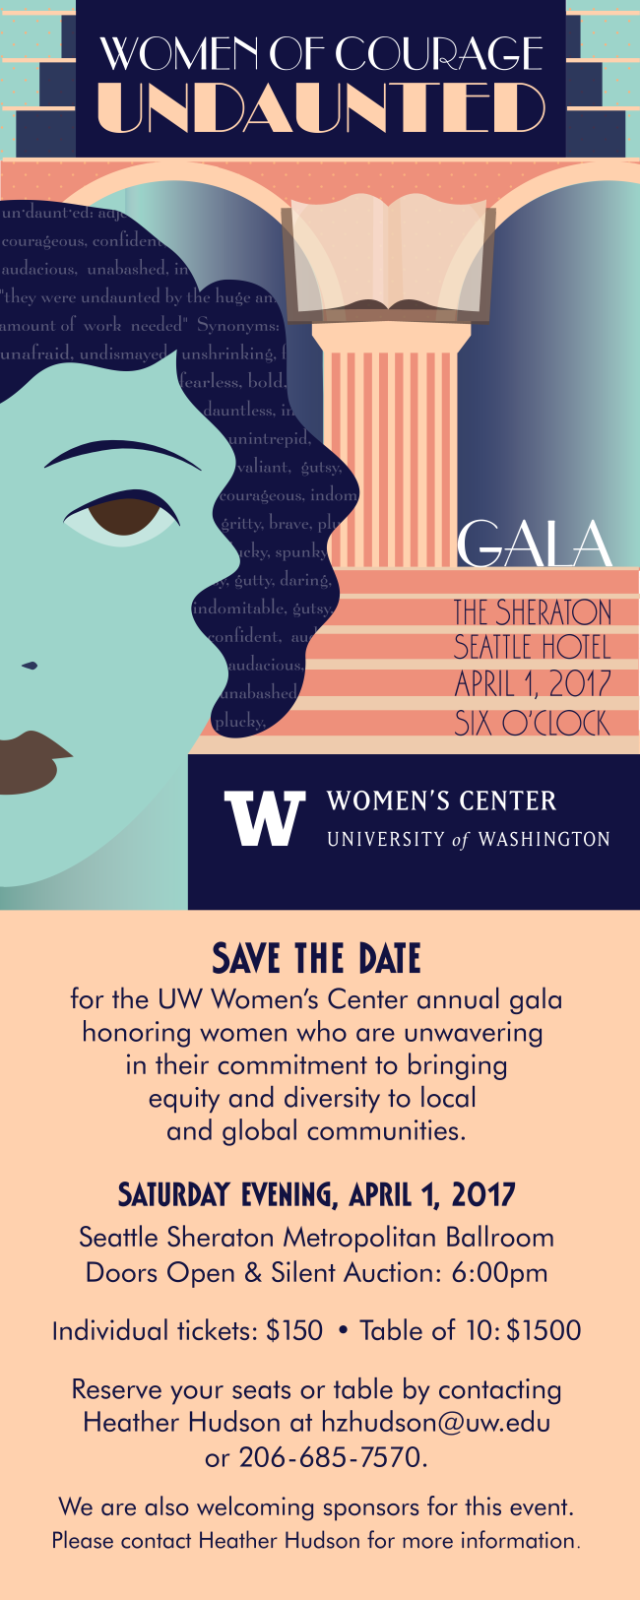 gala_save_the_date-1